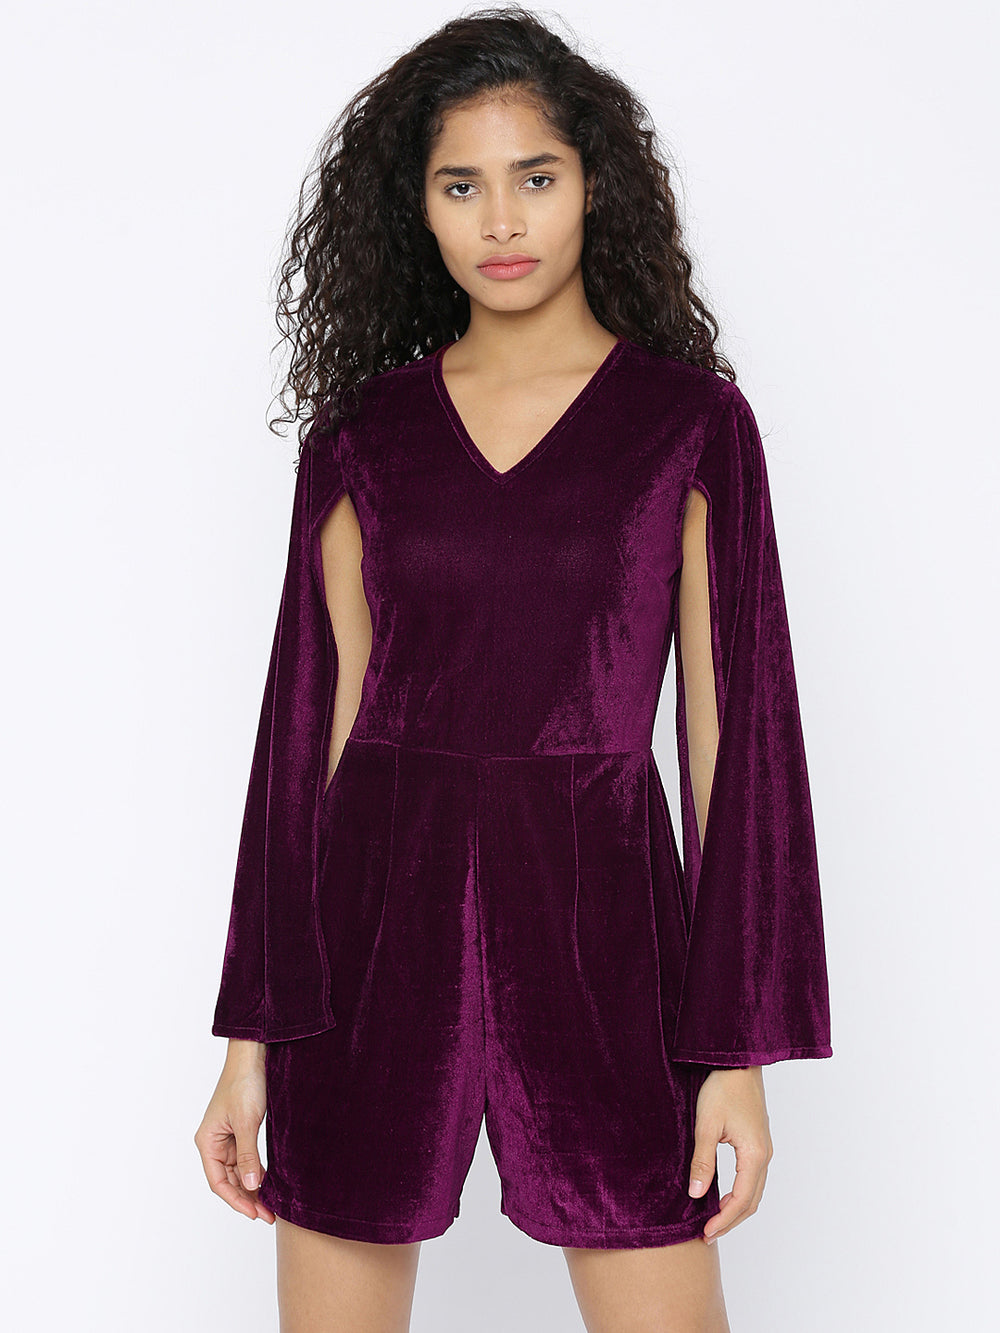 Besiva Purple Solid Playsuit